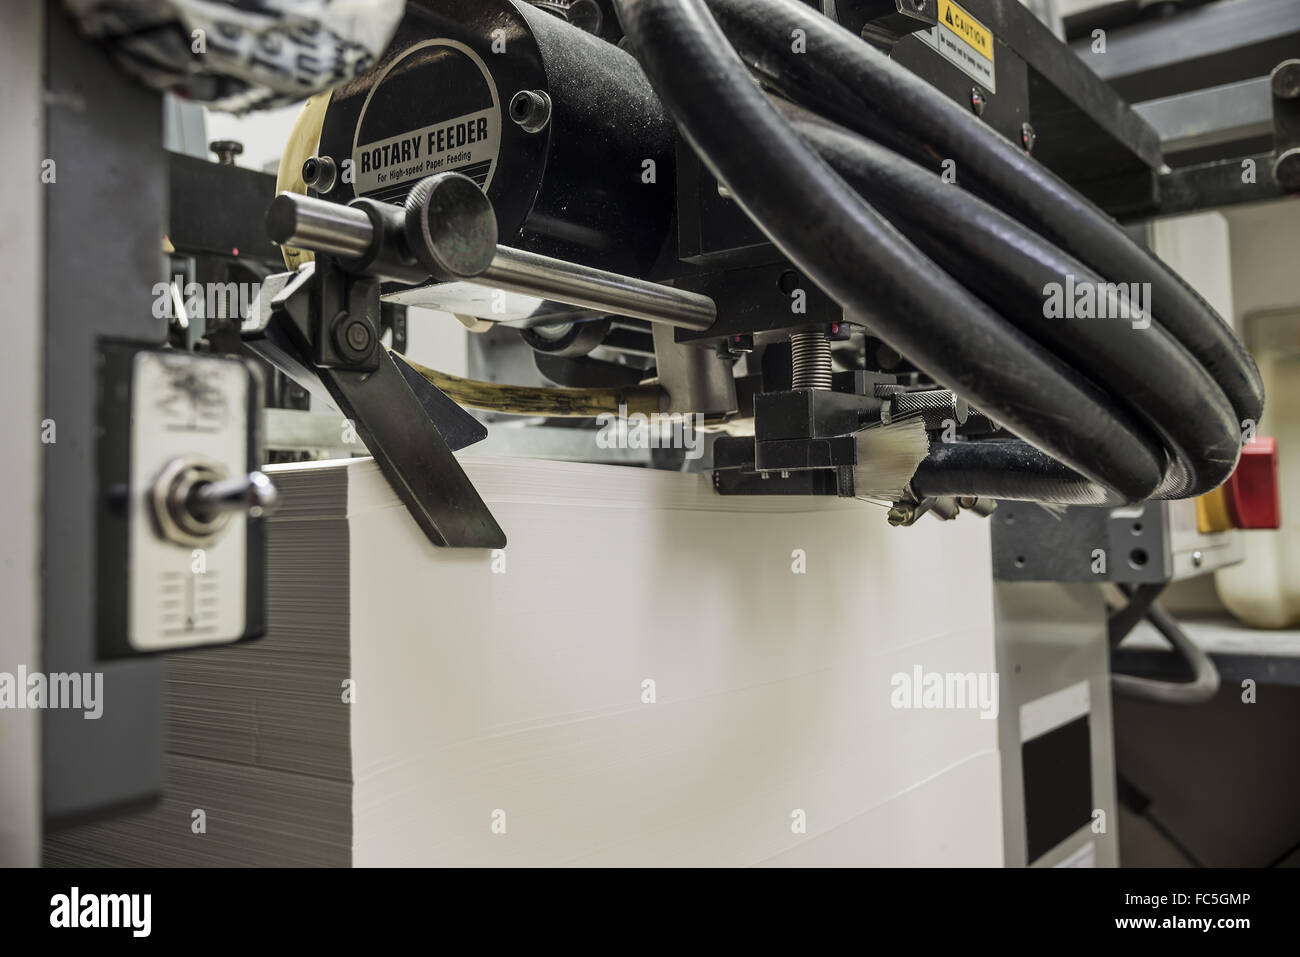 sheetfed offset printing machine - Stock Image